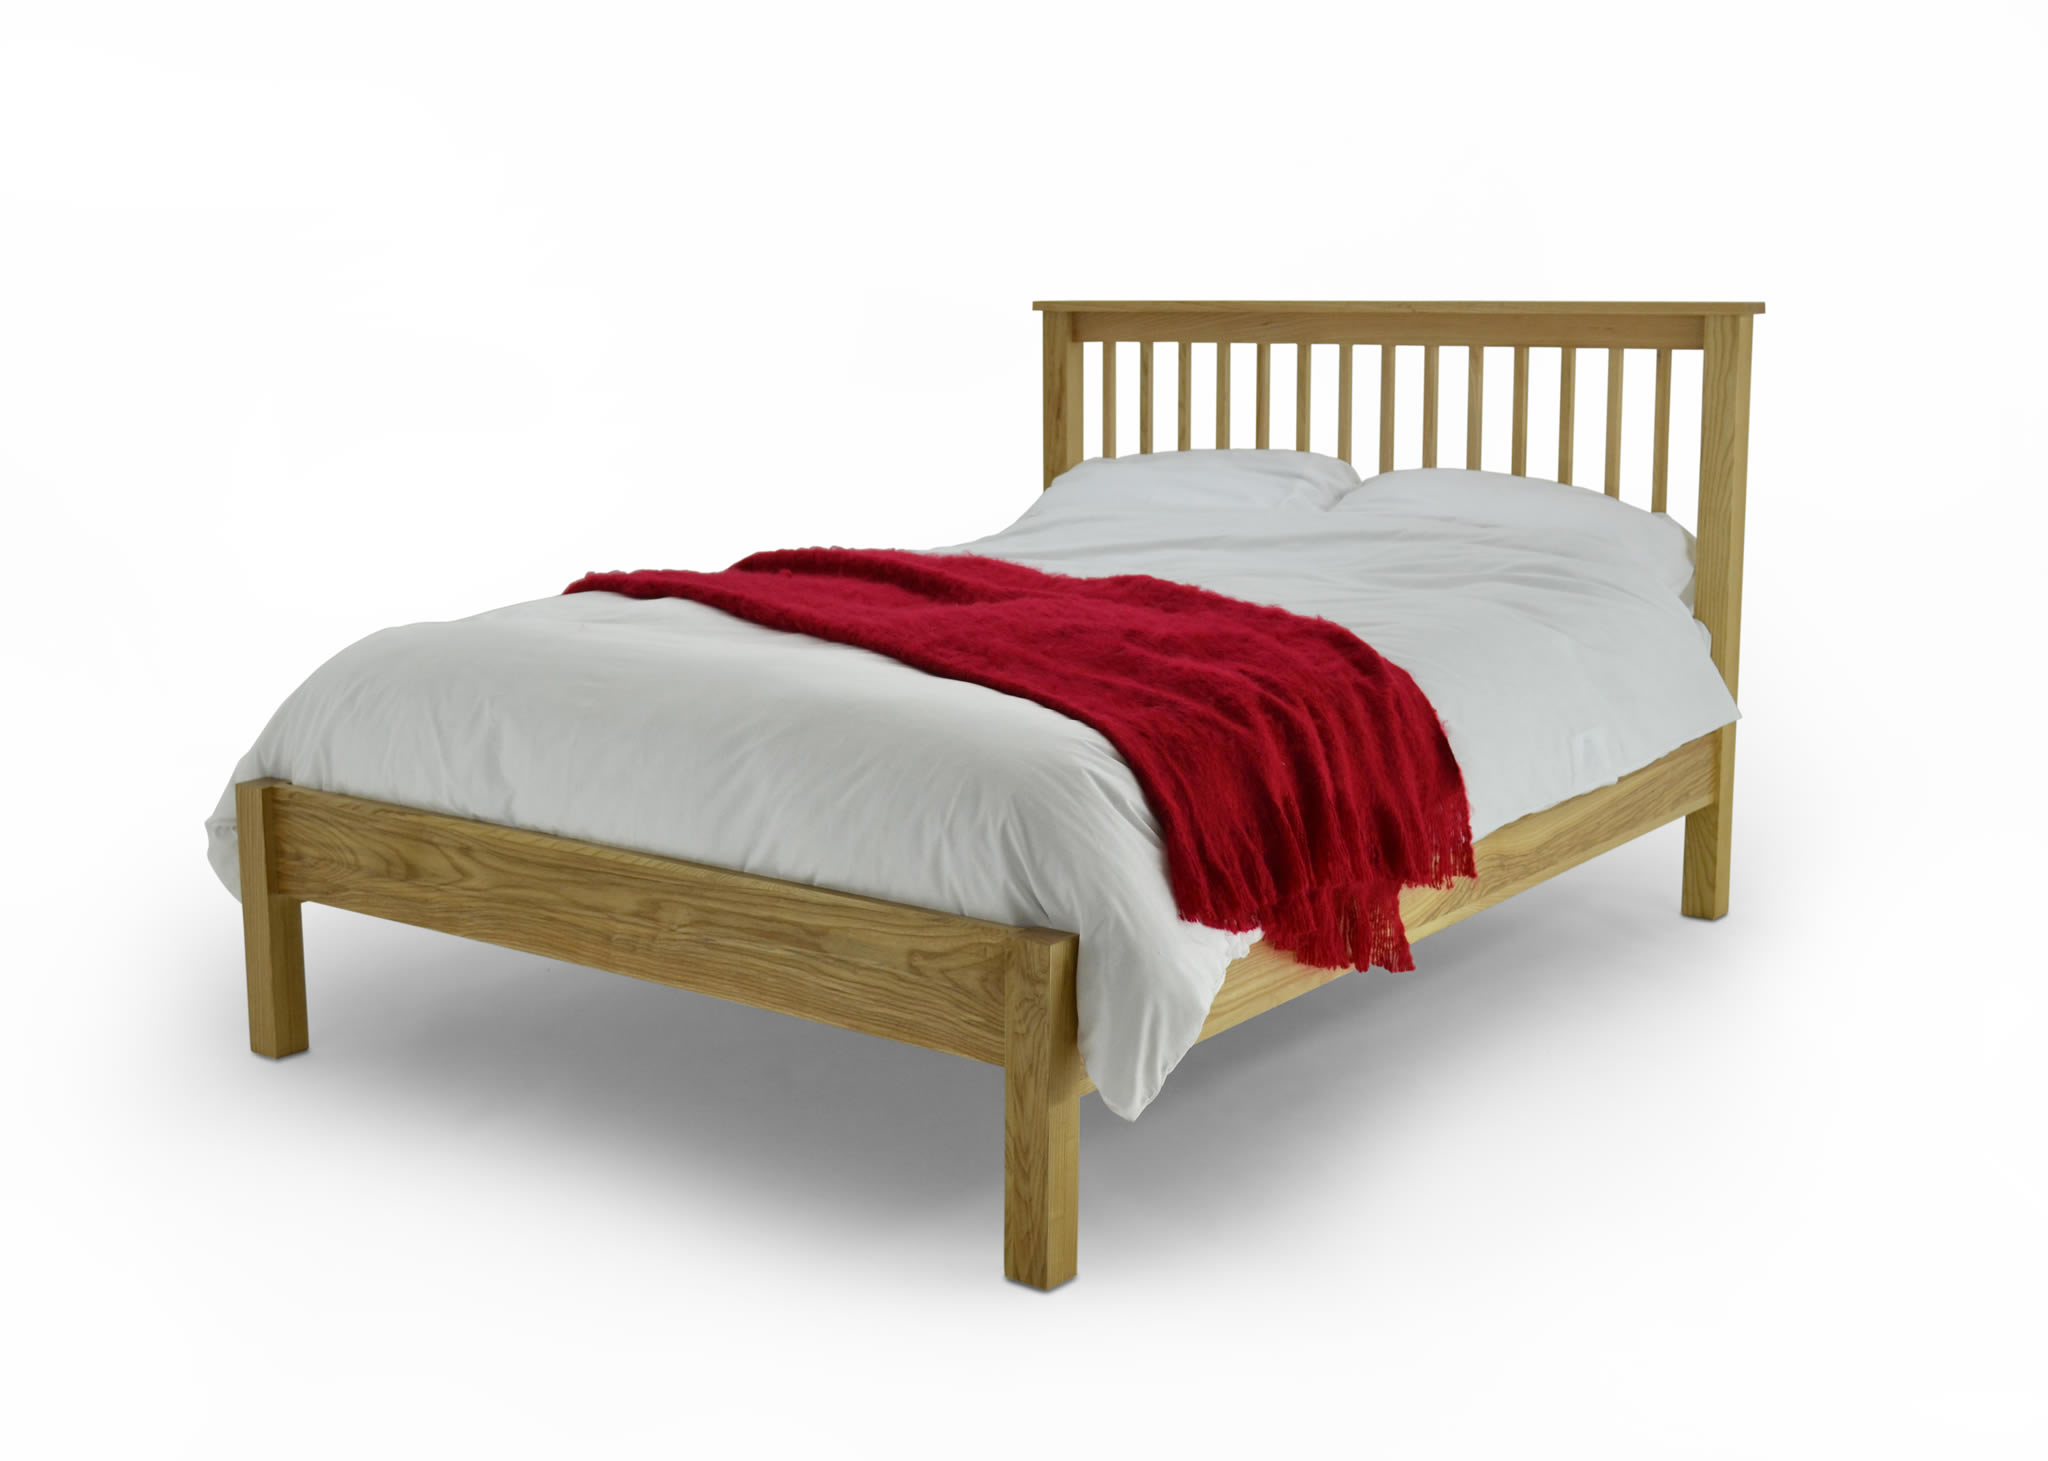 ASHB_Wholesale_Bed_Suppliers